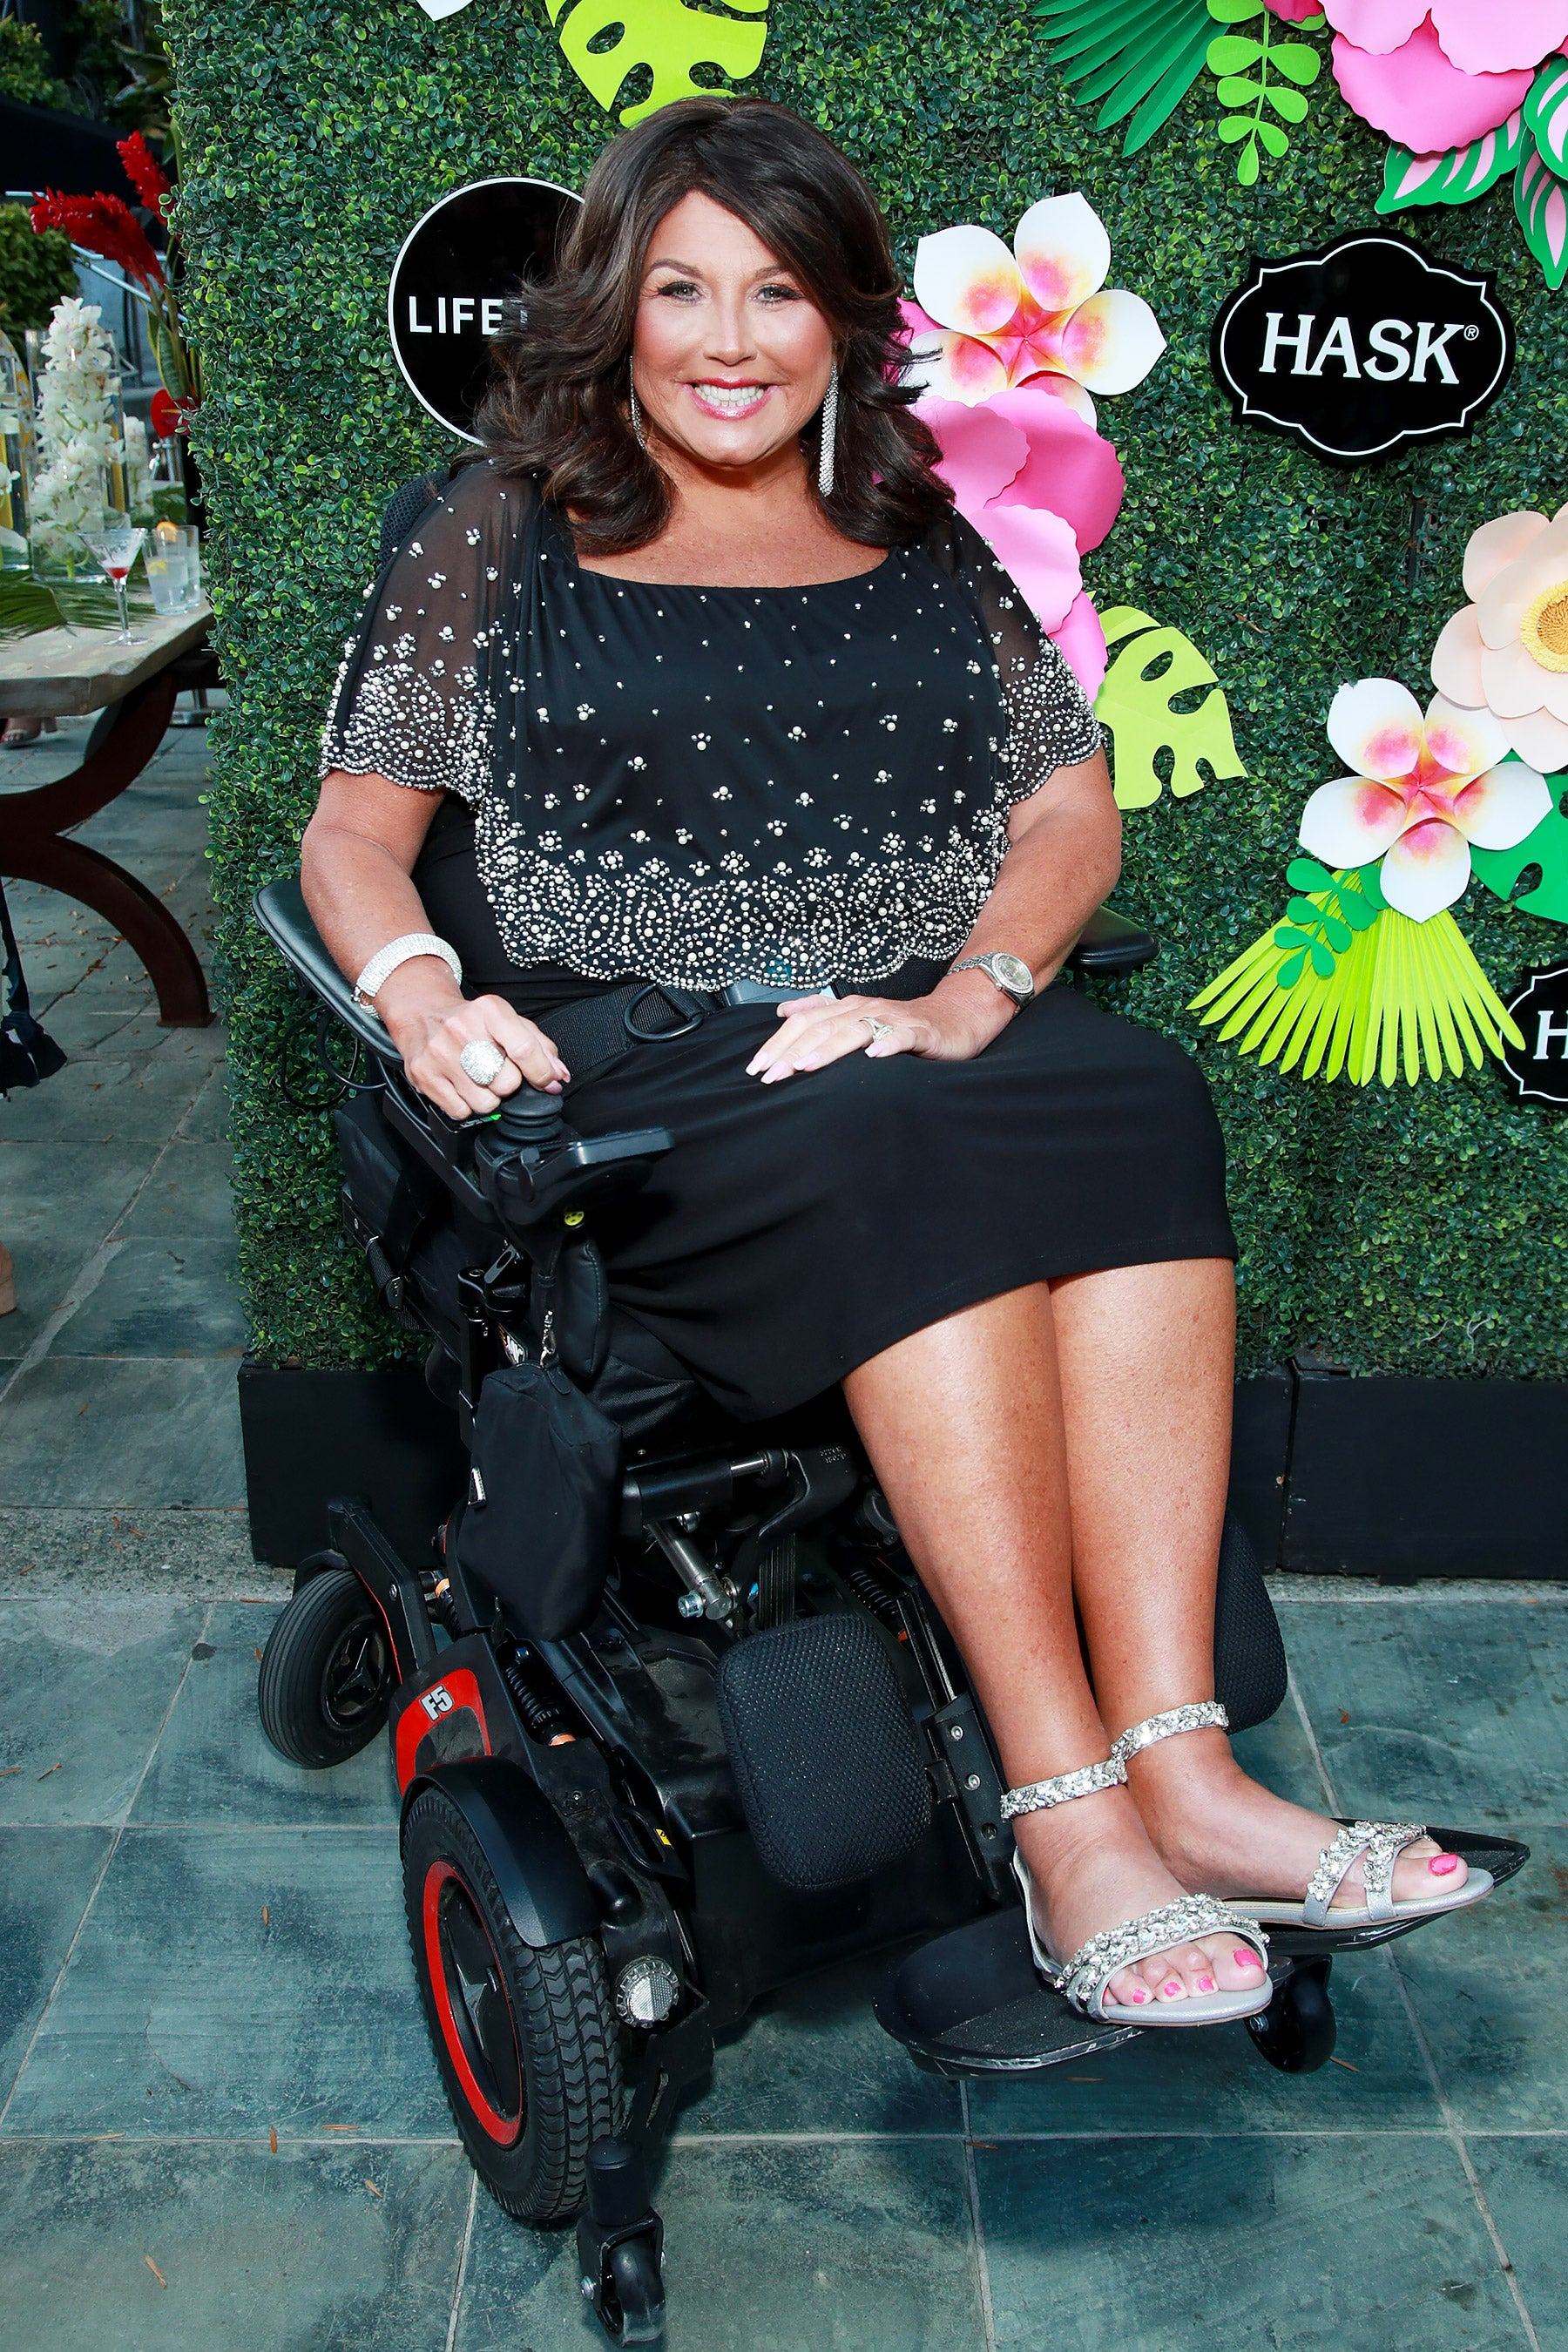 Abby Miller from Dance Moms in a wheelchair